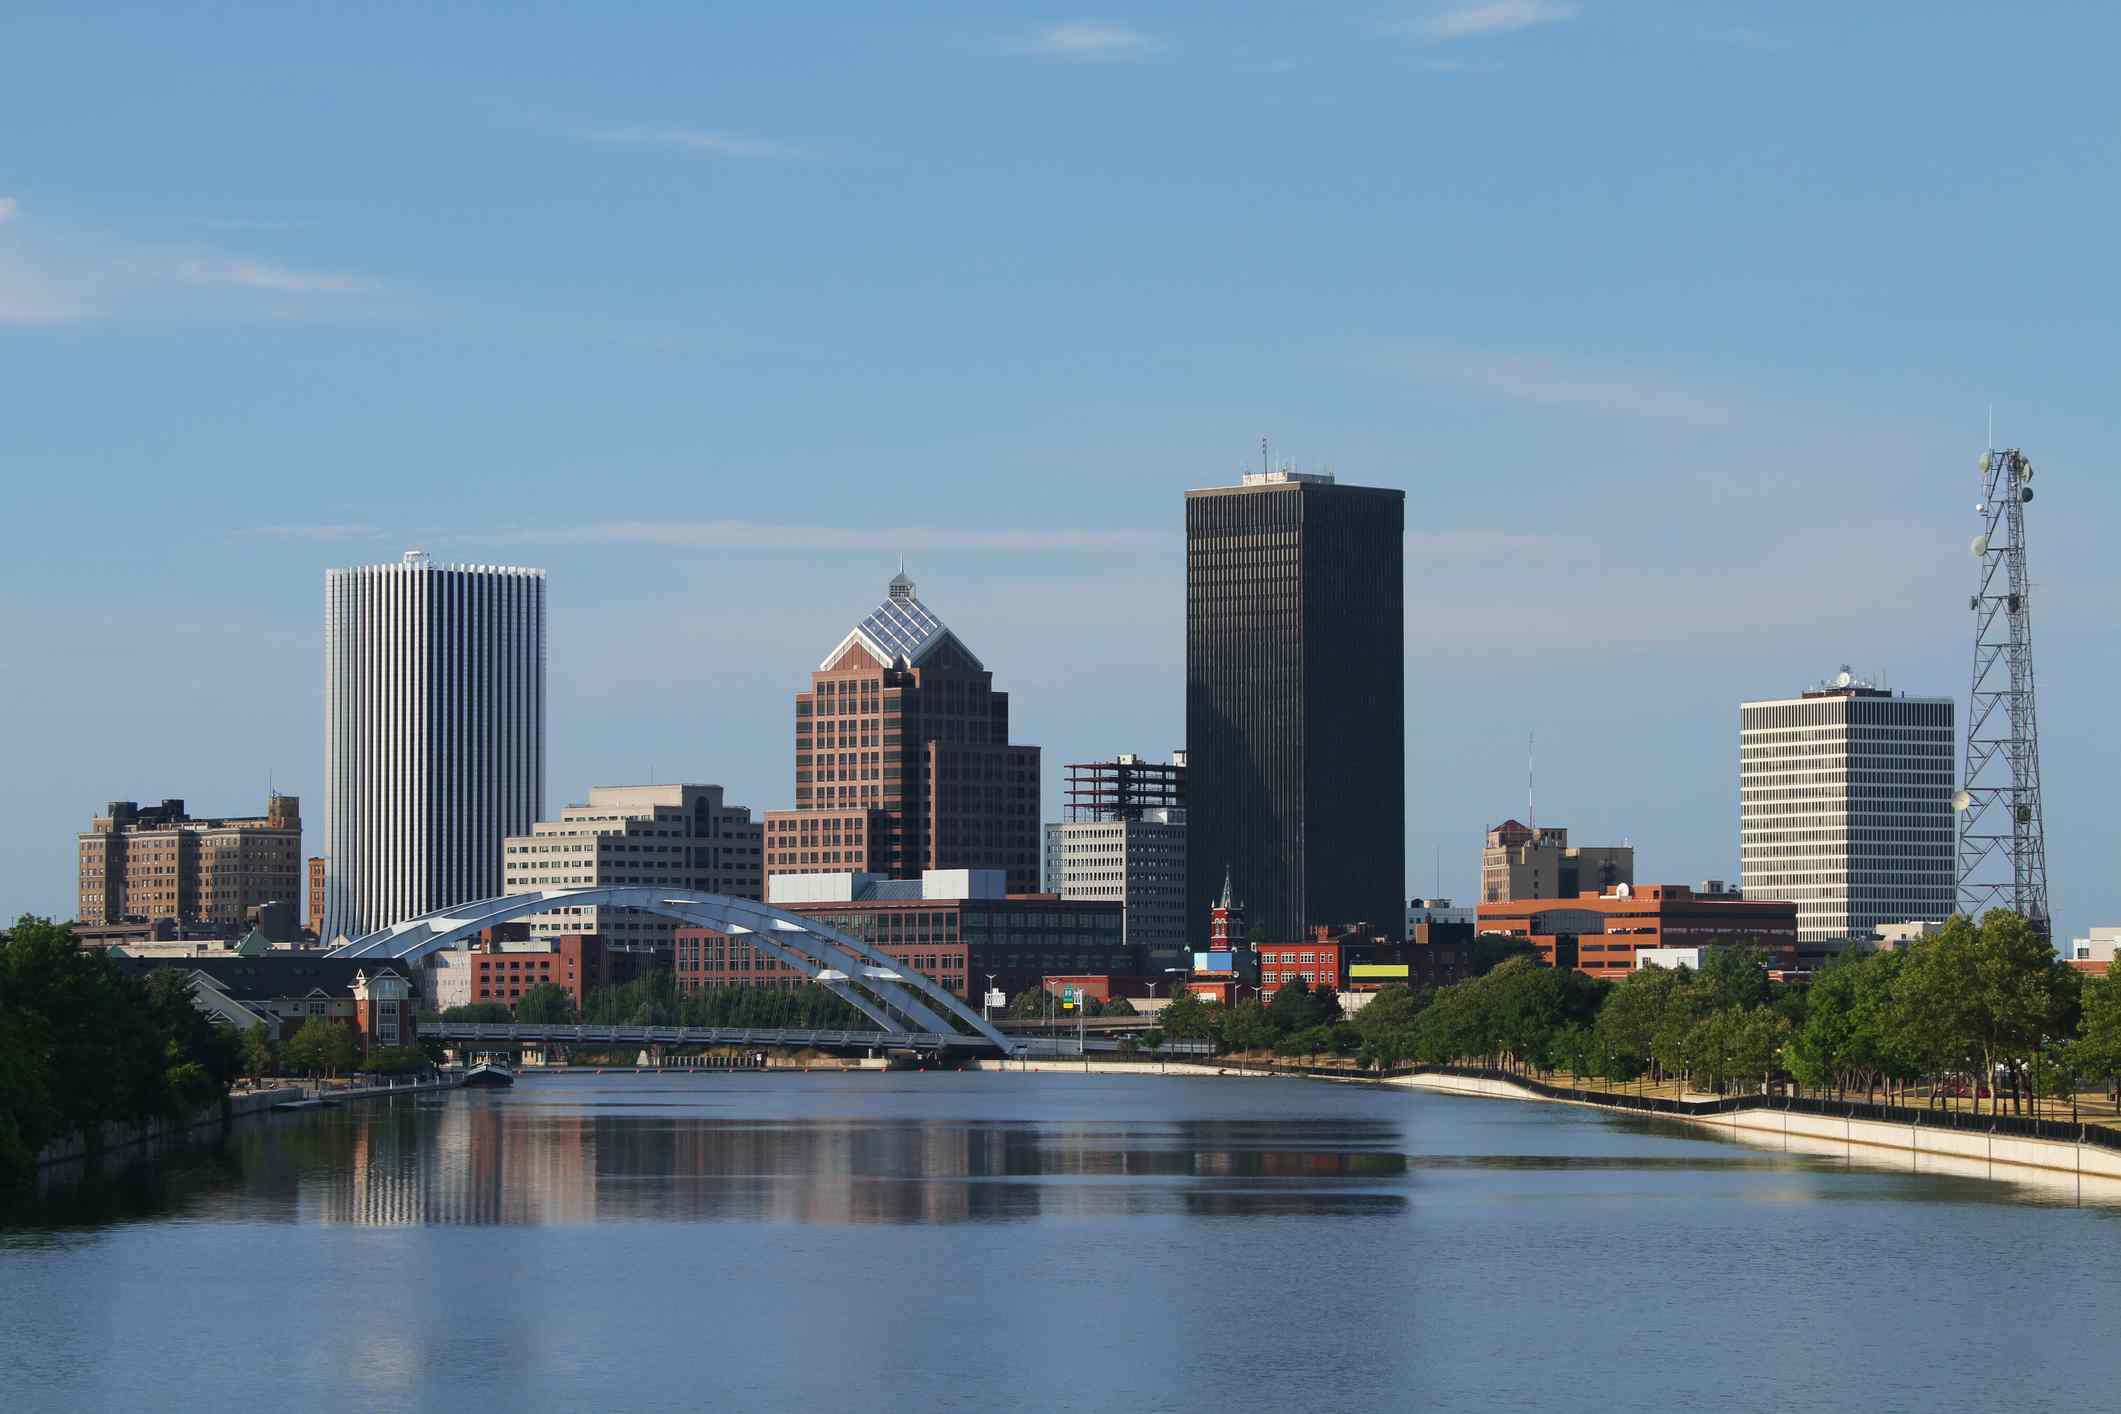 River and skyline of Rochester, New York